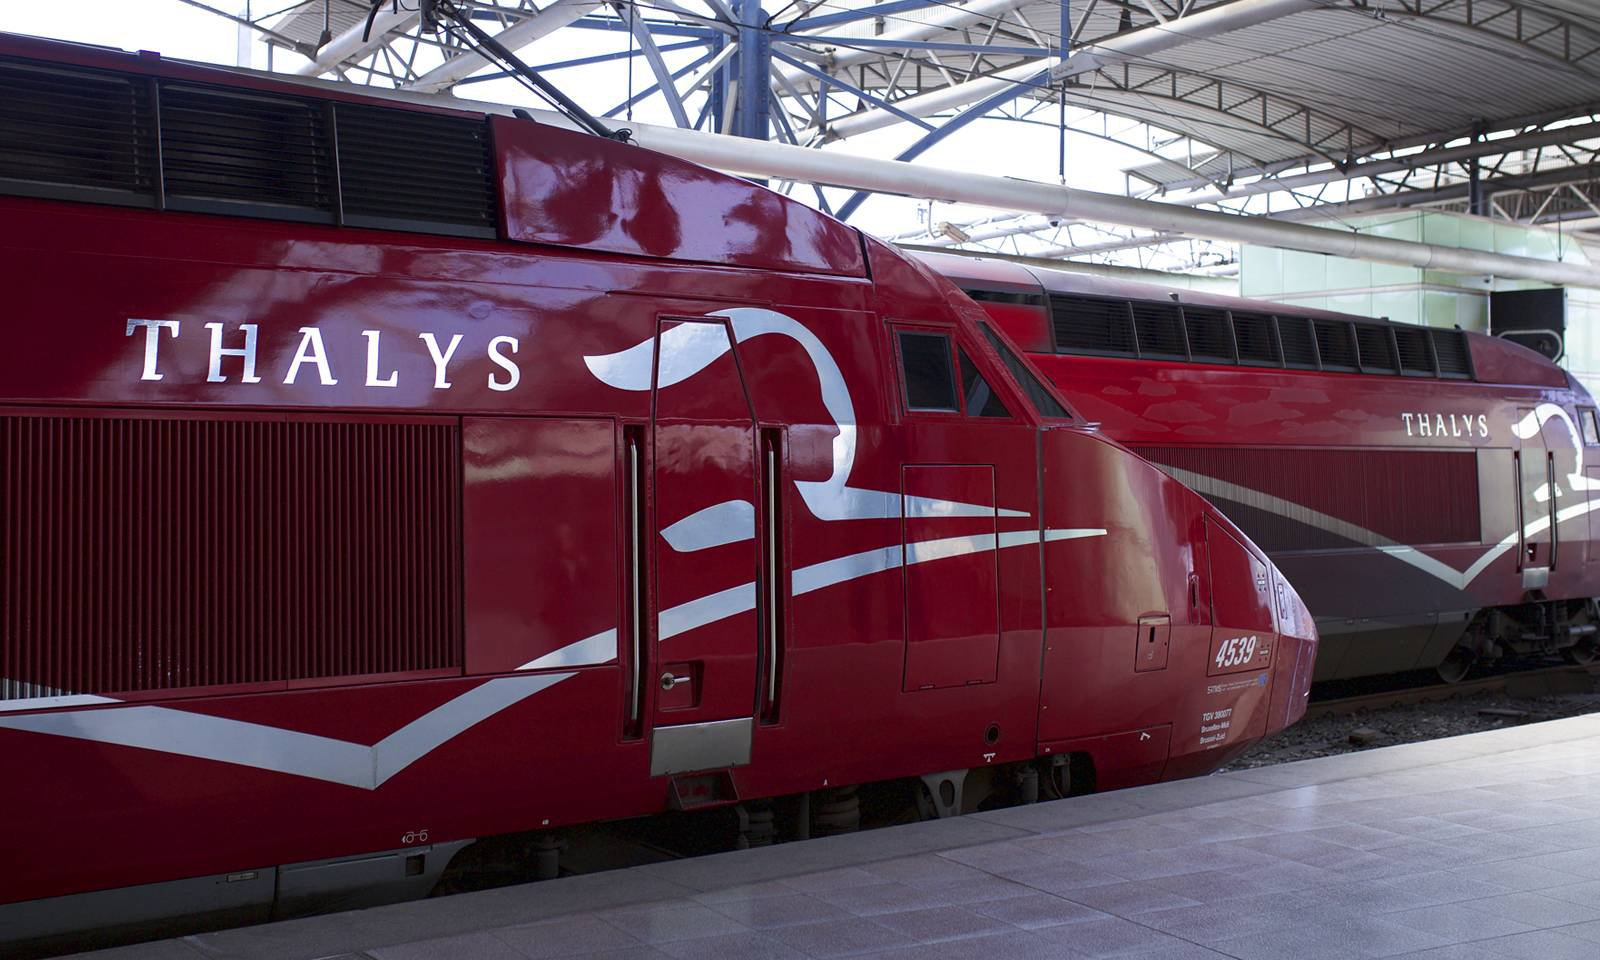 Exploring Europe with Thalys - connecting destinations, connecting cultures!